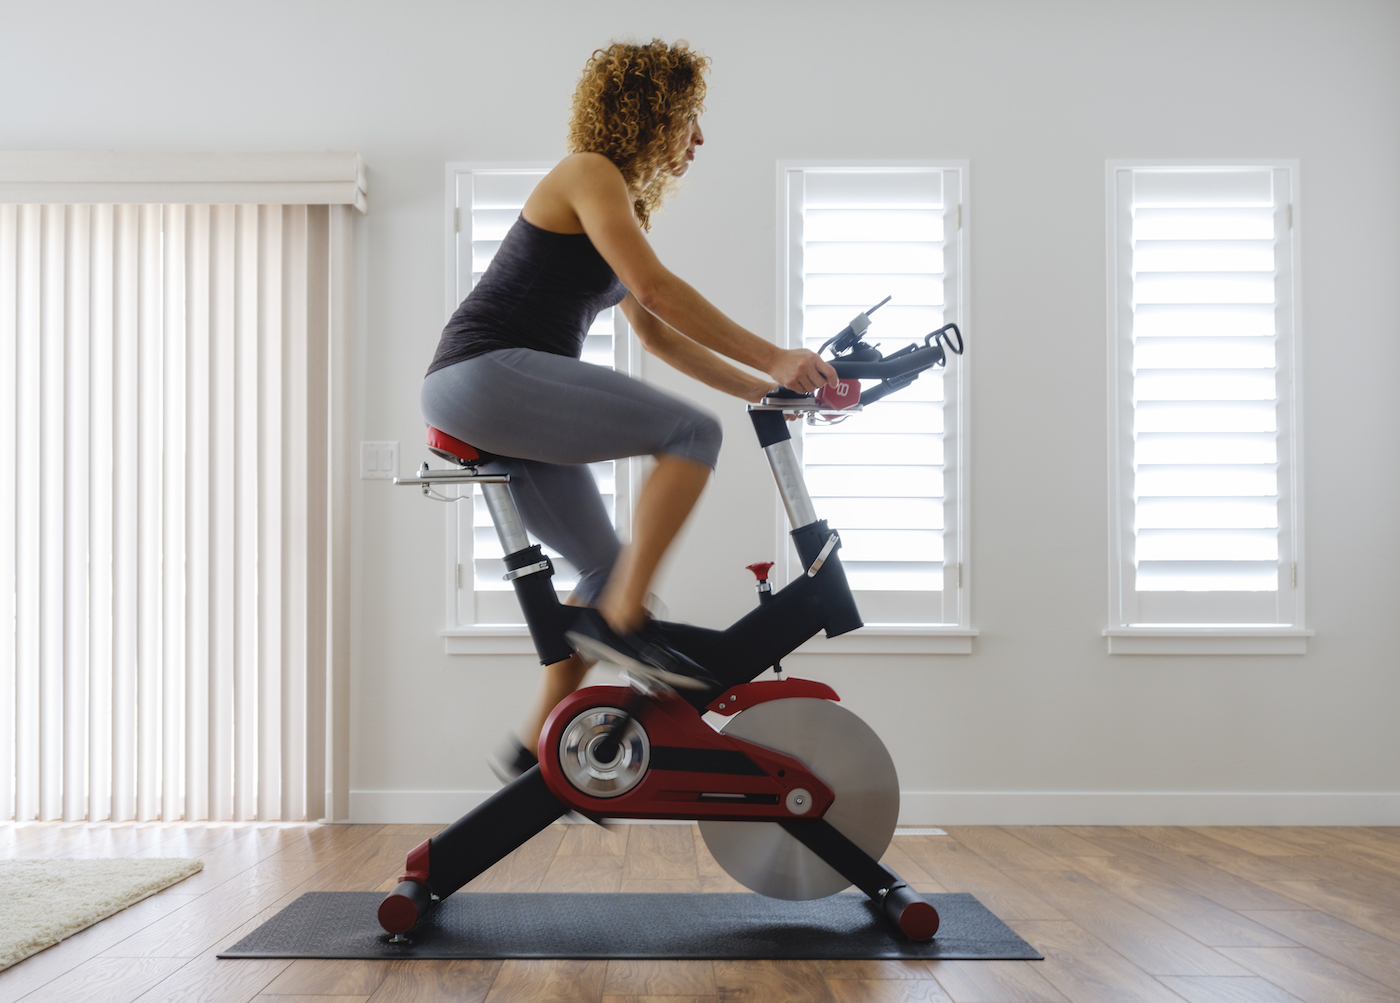 Thumbnail for The Many Benefits of Spin Class That Prove It's so Much More Than a Leg Workout